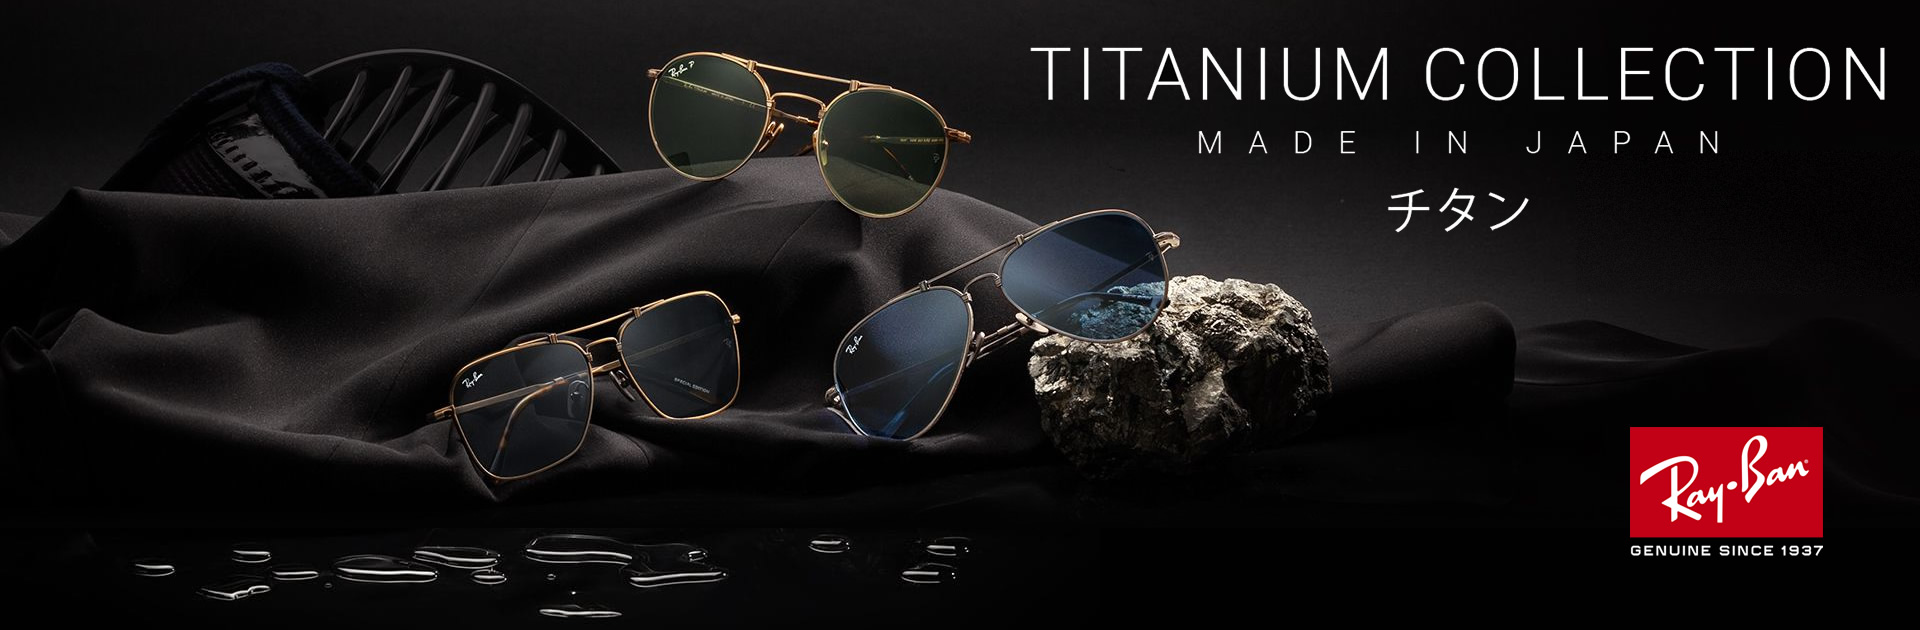 IExclusive Ray-Ban Titanium Collection